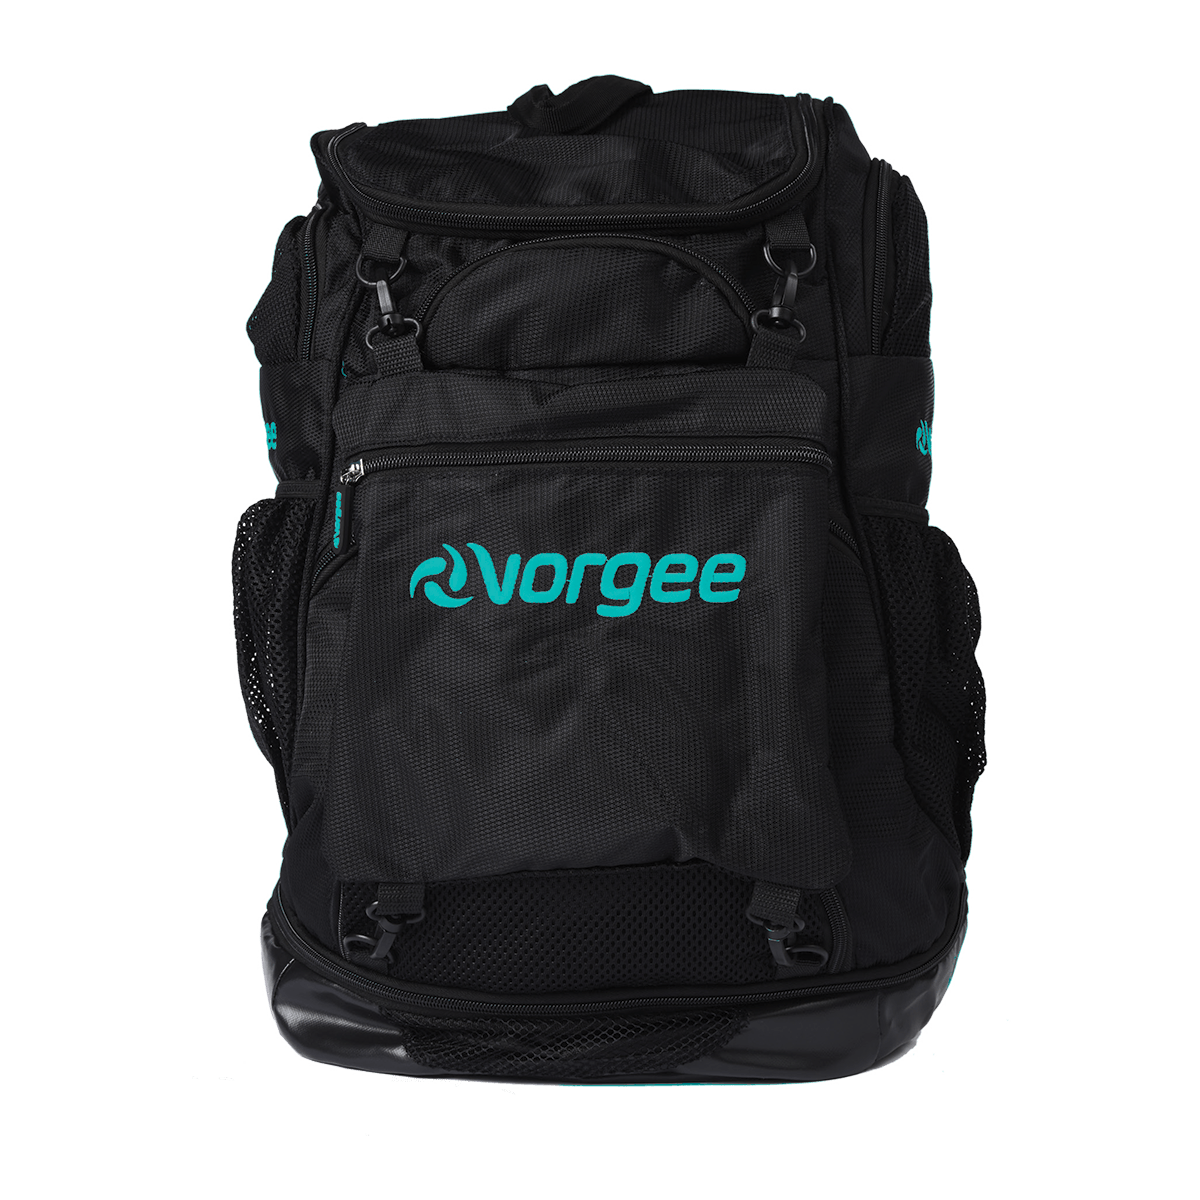 Vorgee Backpack - Black with Teal Logo 1200